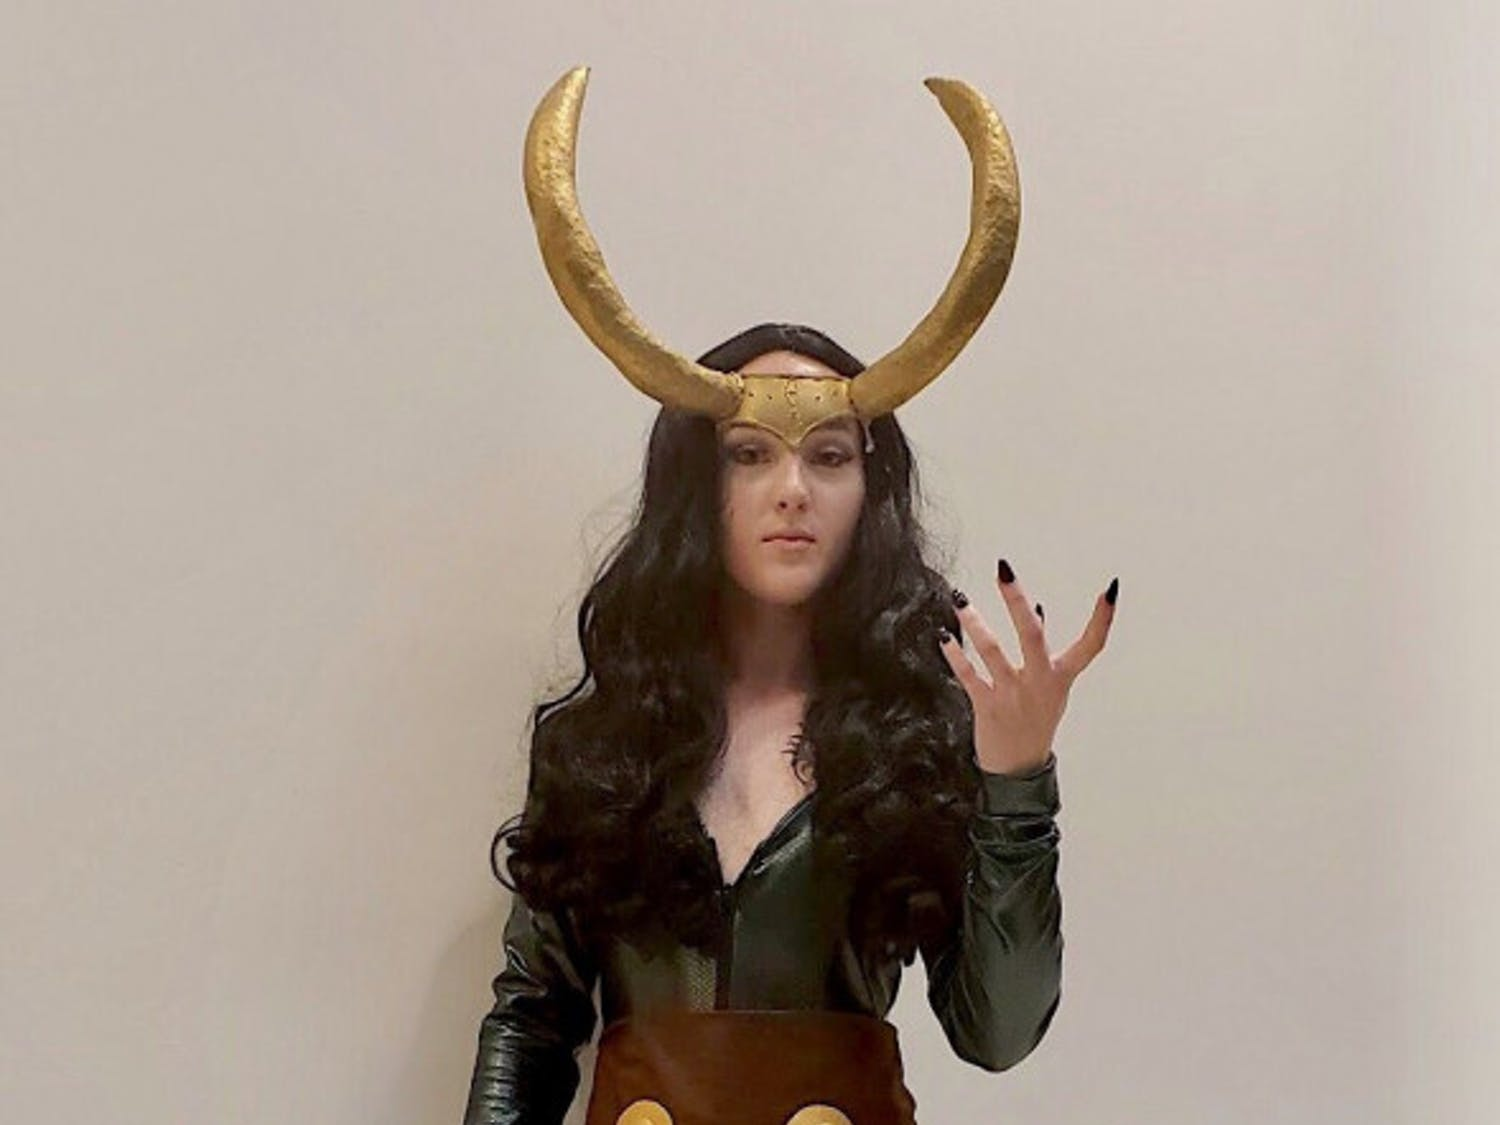 "Lady Loki Kati Ankrom, 21, resident of Leesburg, Florida, attended SwampCon as a genderbent Thor character, Lady Loki. Gender bending is when someone cosplays a character as its opposite gender. Ankrom has been improving the costume for the past four years. She first cosplayed Lady Loki when she was 18 and felt very proud when she finished the costume in nine months. Most of the cosplay is made out of a latex bodysuit and is not breathable, according to Ankrom. ""These horns I've had for like three years,"" she said. ""I refuse to get rid of them."" She advises first-time cosplayers to not make the costume harder than it needs to be. ""You will get better eventually,"" she said. ""Just start at the beginning and work your way up."""